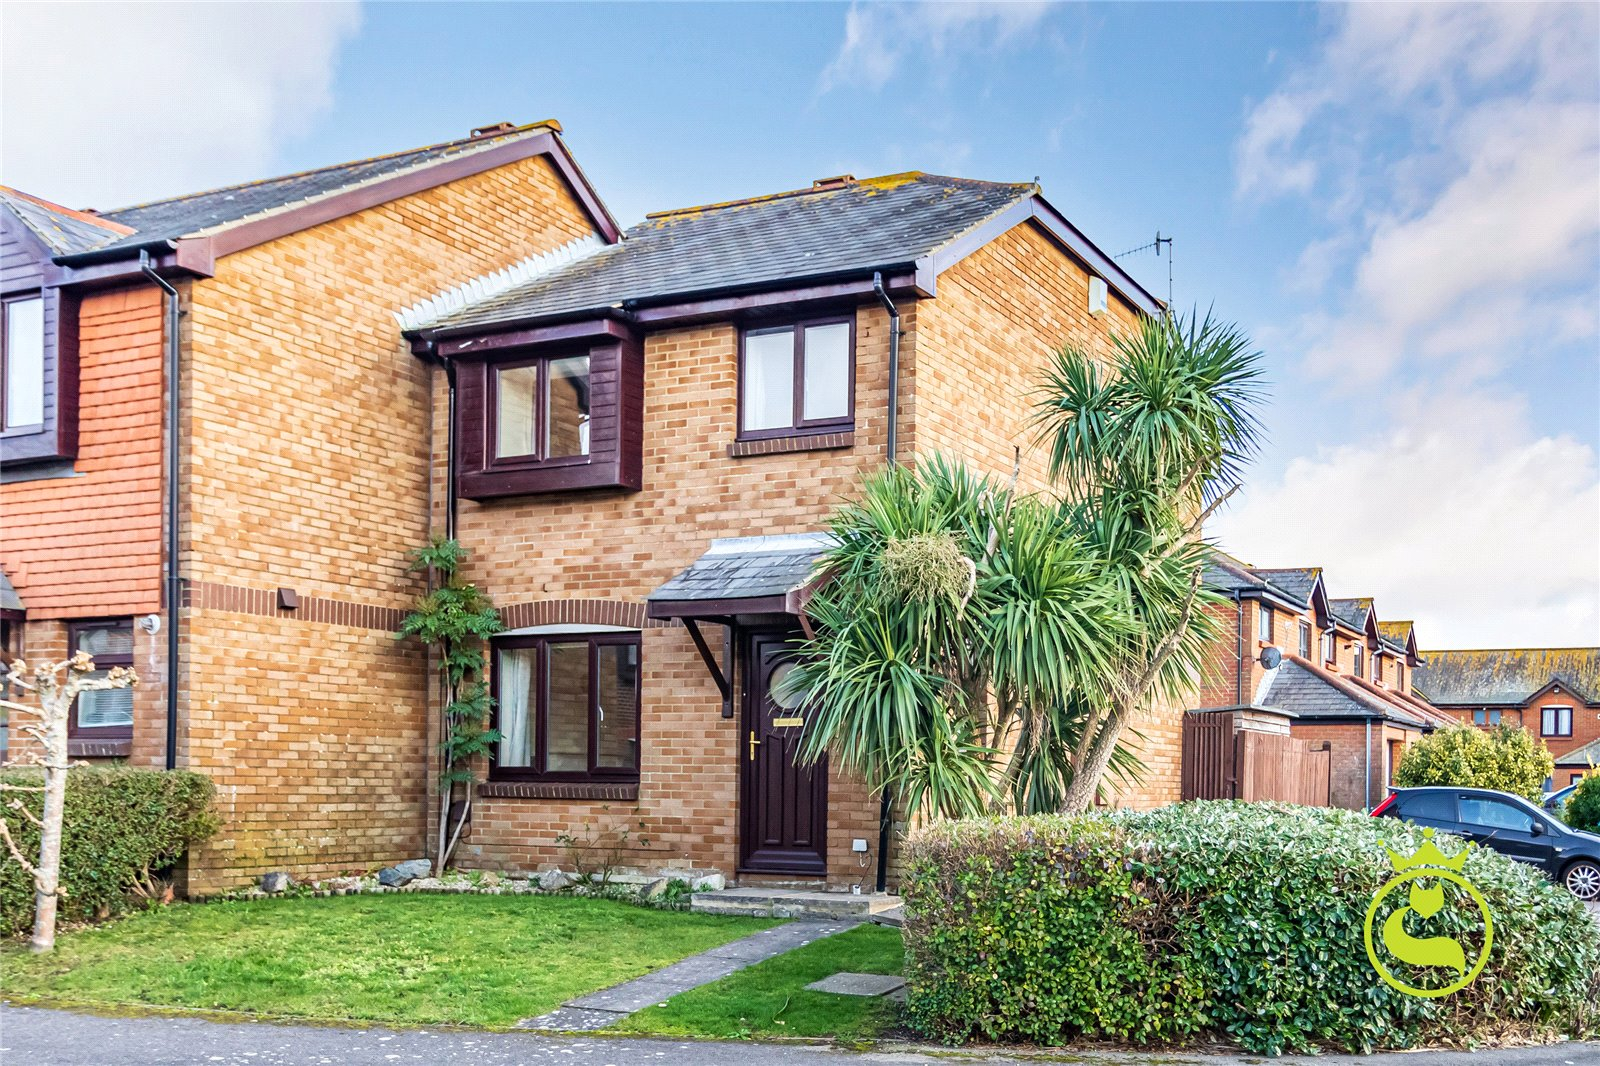 3 bed house for sale in Labrador Drive, Baiter Park, BH15